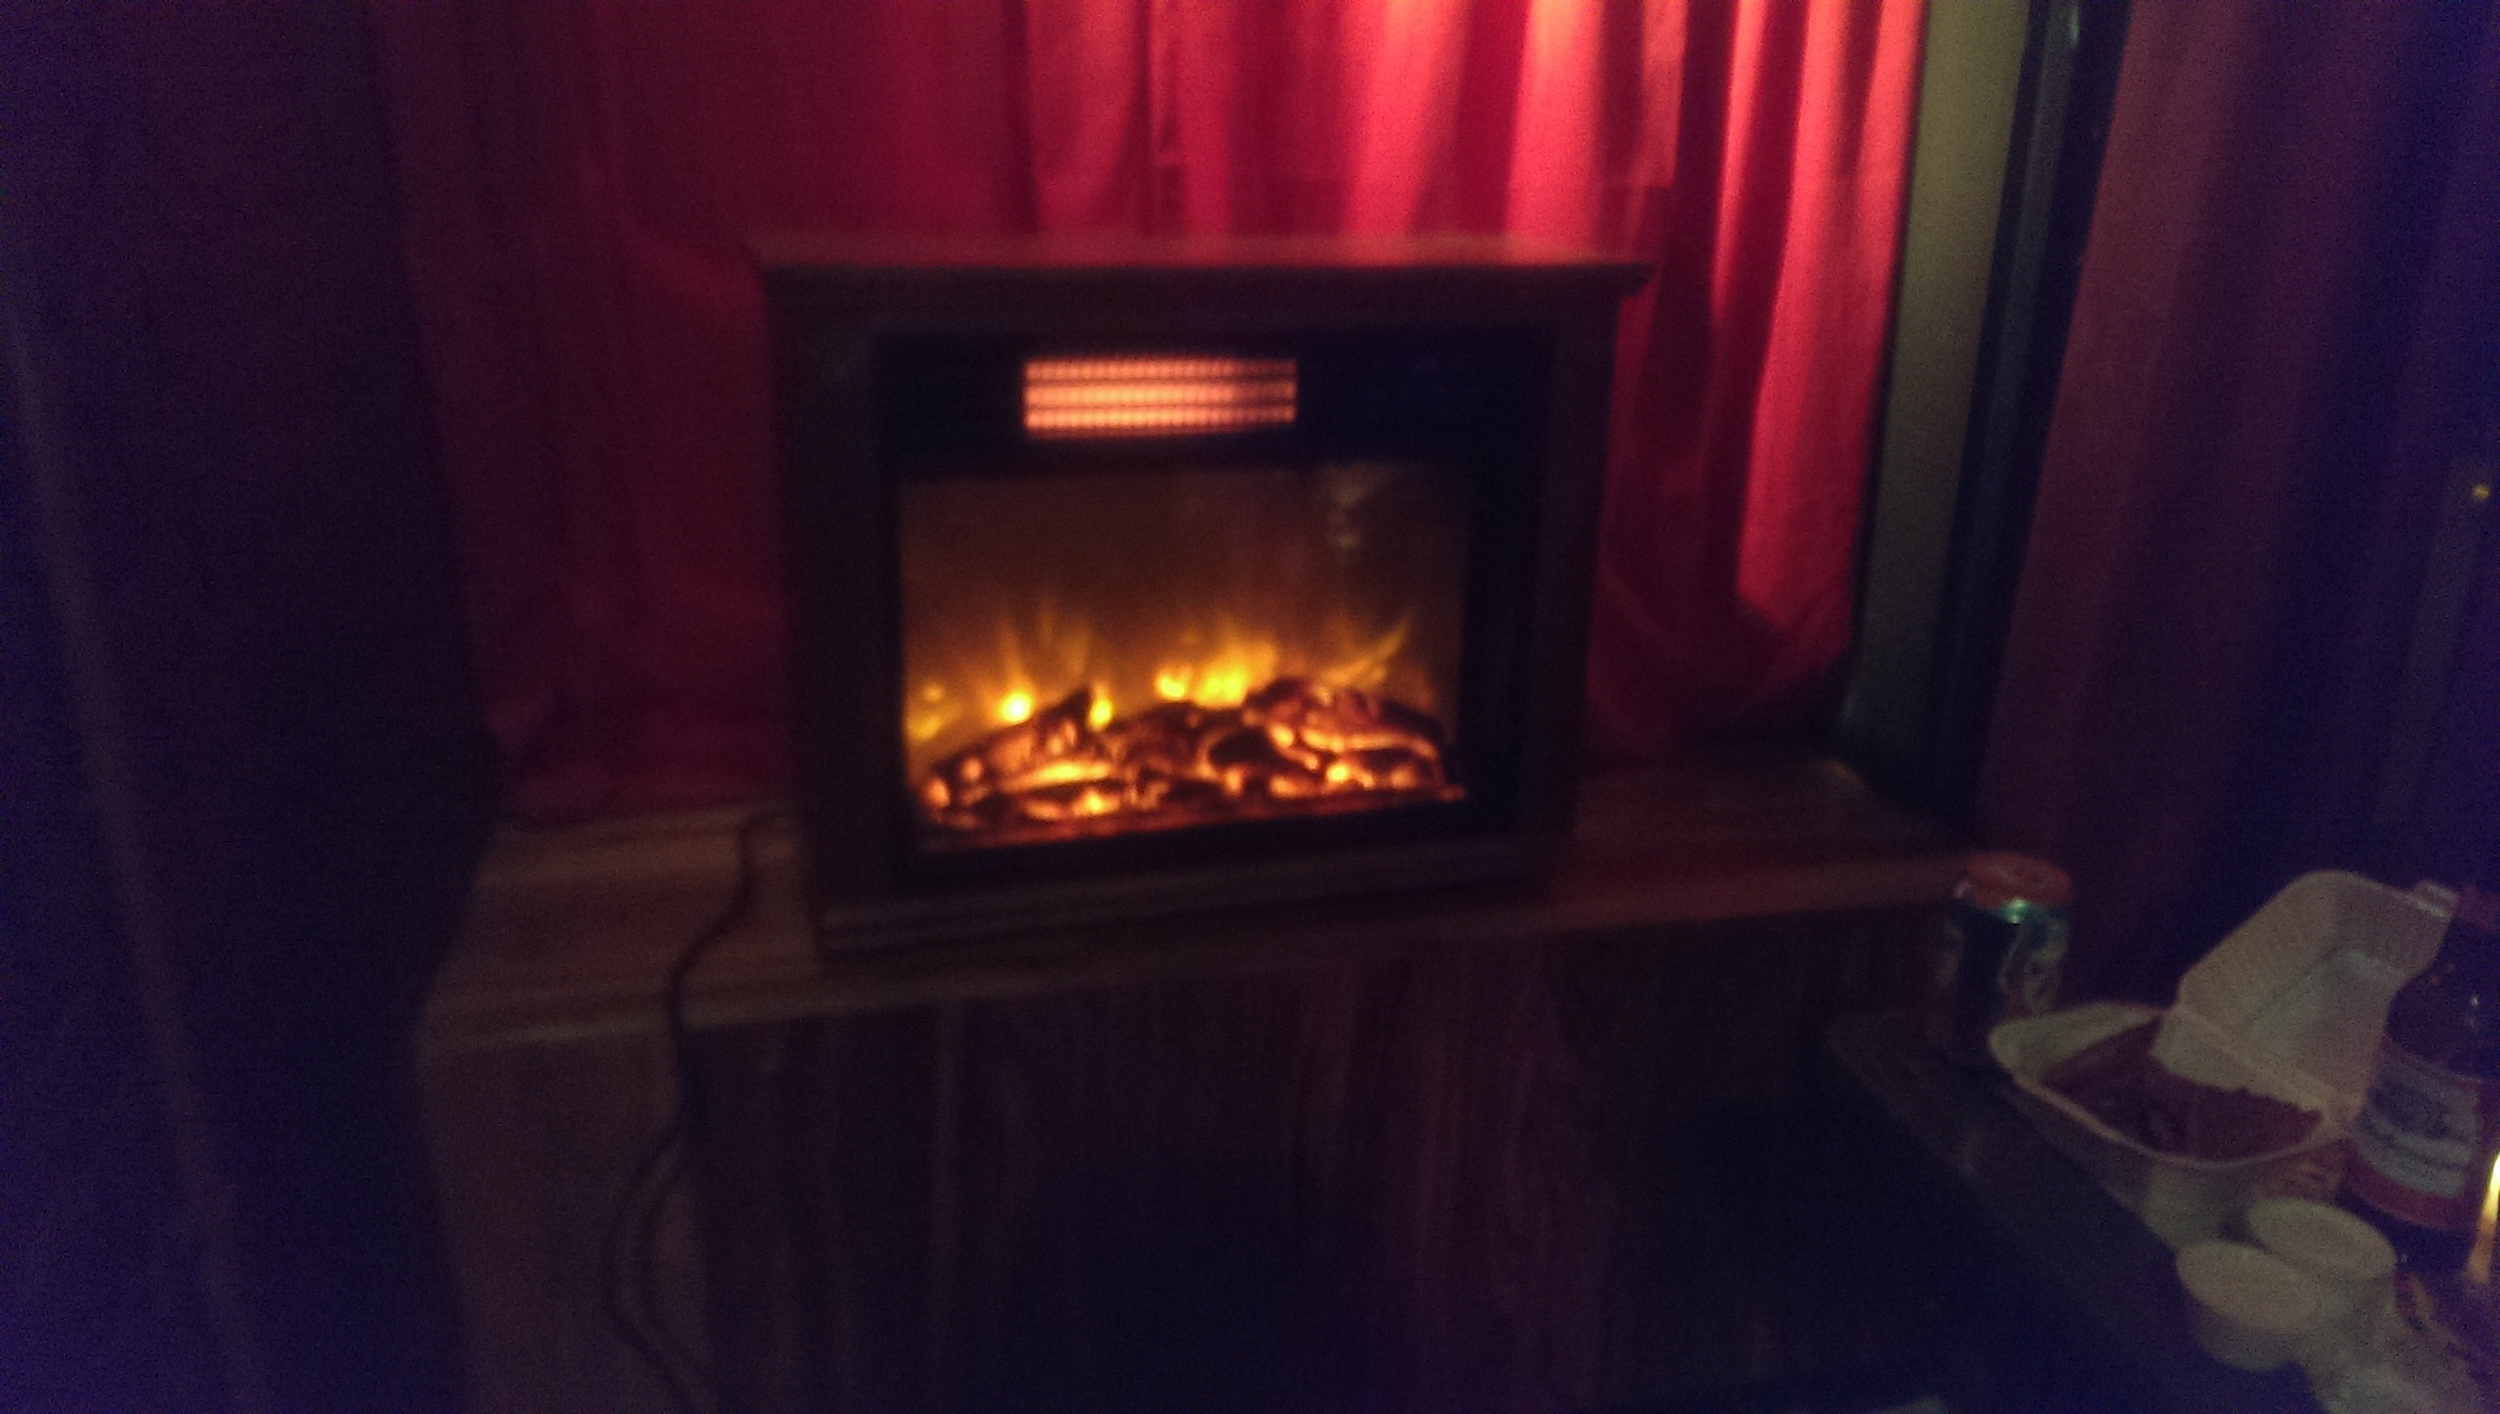 They have a fireplace! (sorta)